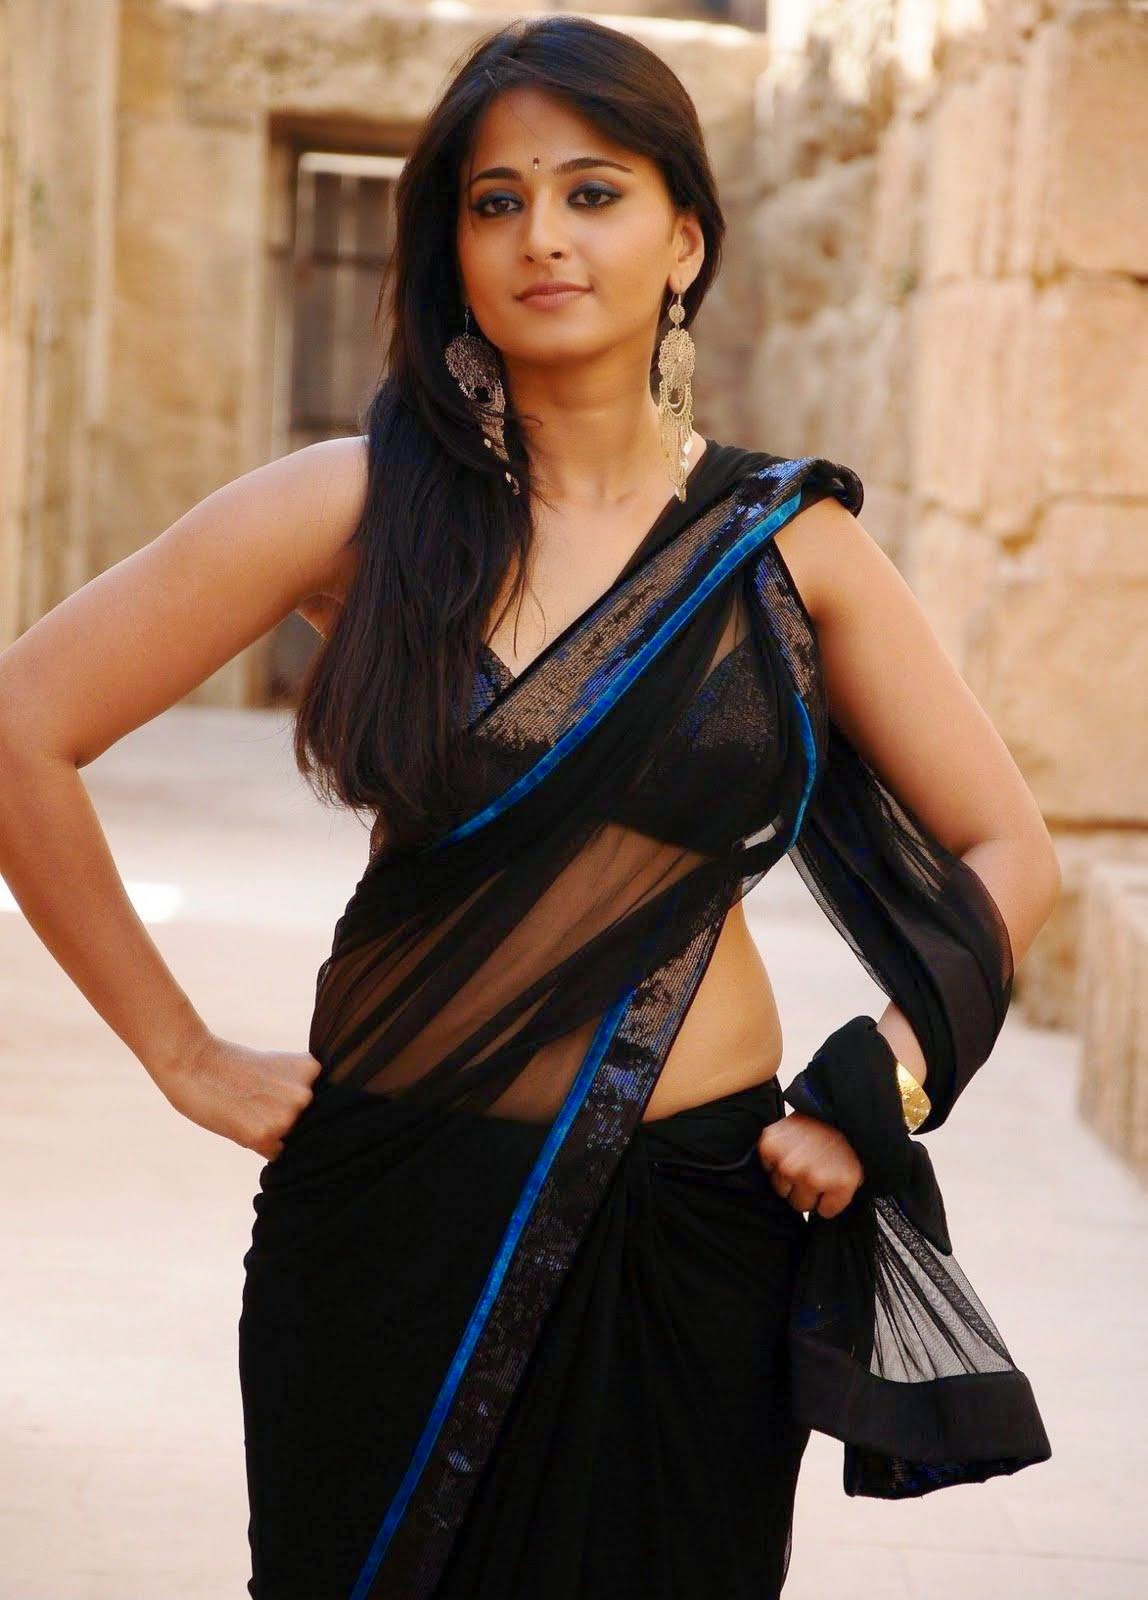 Anushka Shetty In Black Backless Saree Celebs Hot World Hq Photos No Watermark Pics Celebs Hot World Celebs Photo Gallery Around The World